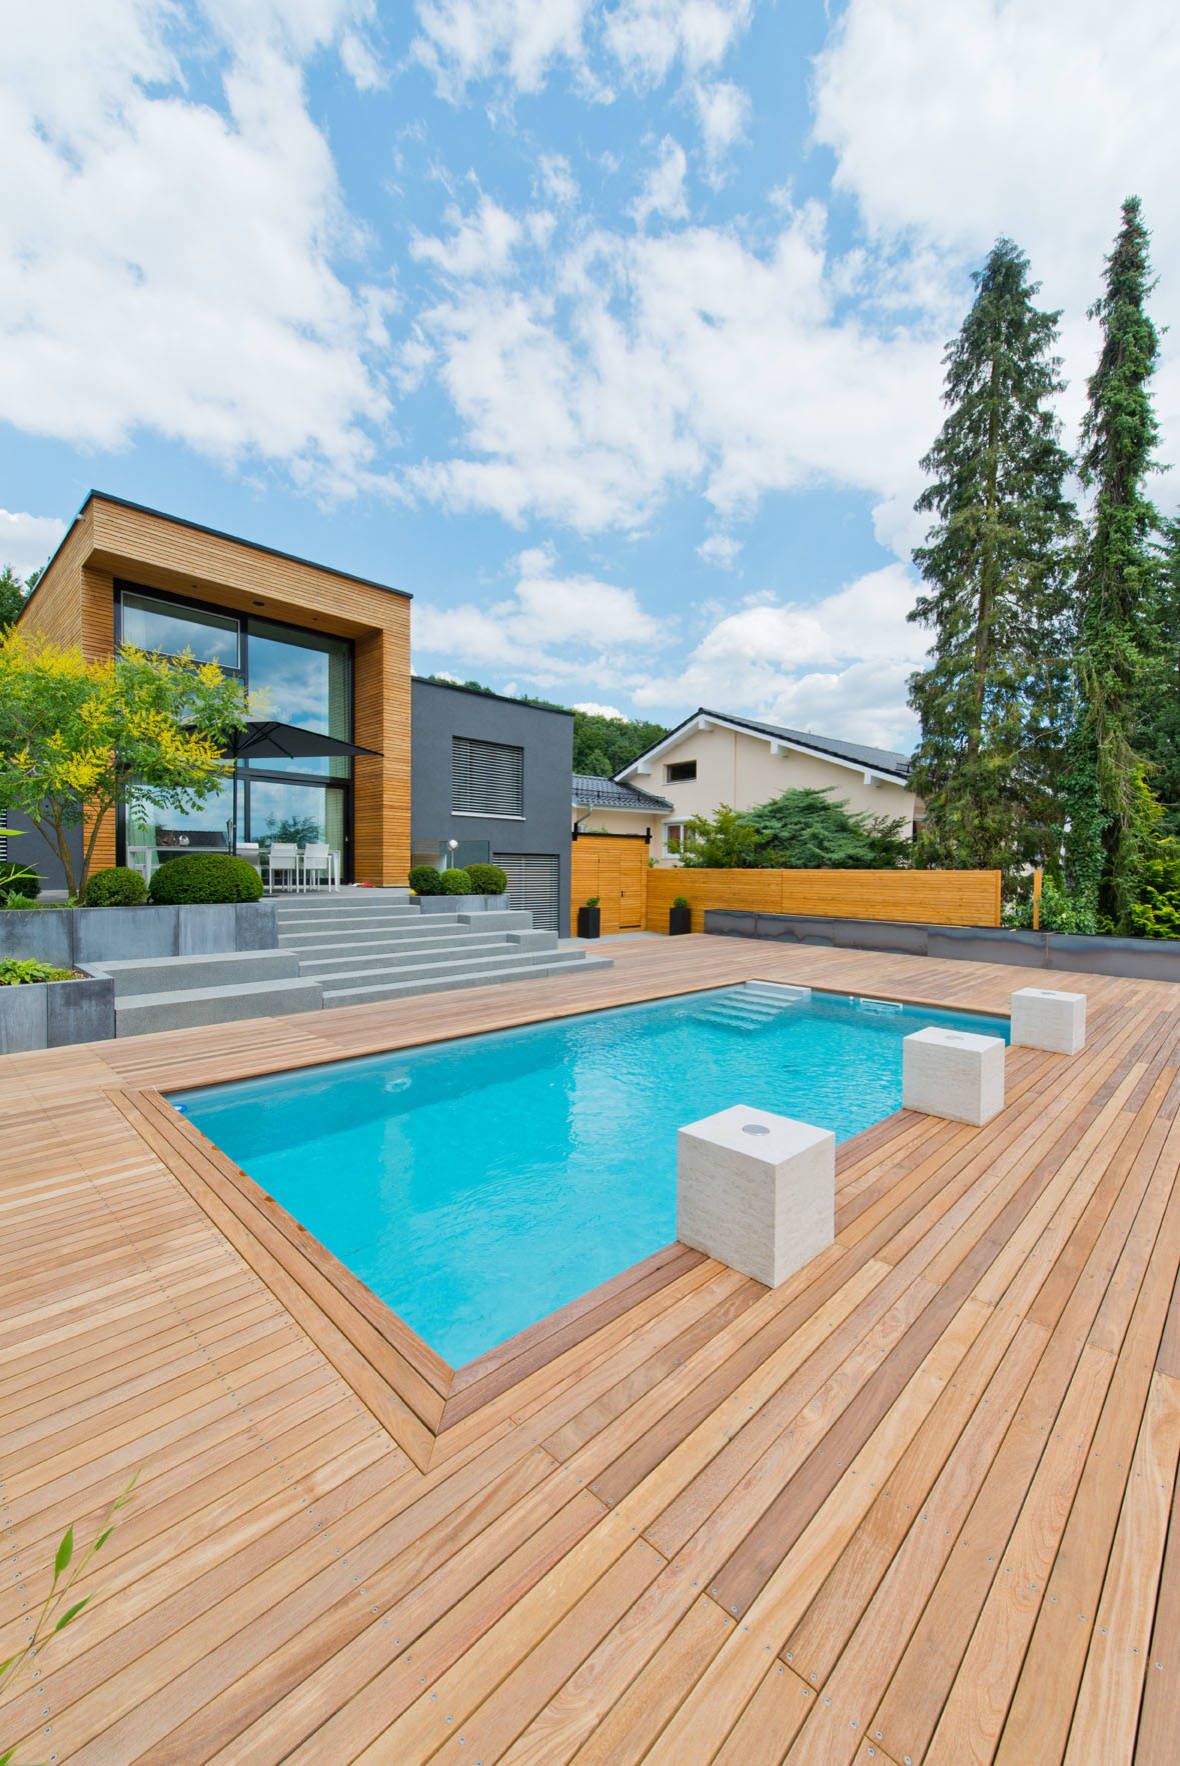 Betonpool 75 Beautiful Mid-sized Brown Pool Pictures & Ideas - February, 2021 | Houzz